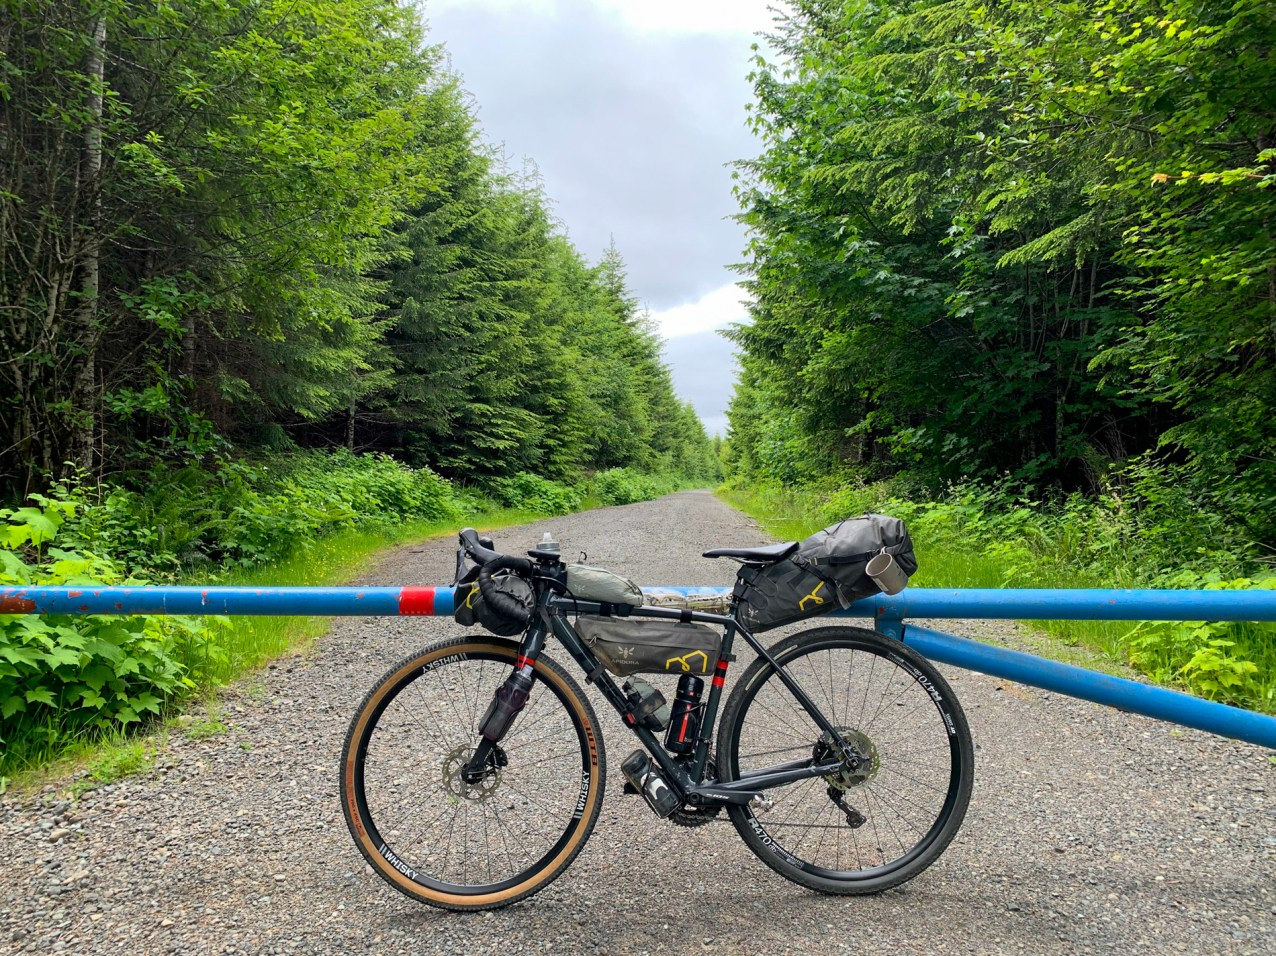 gravel bike leaning against a metal gate on a forest gravel road